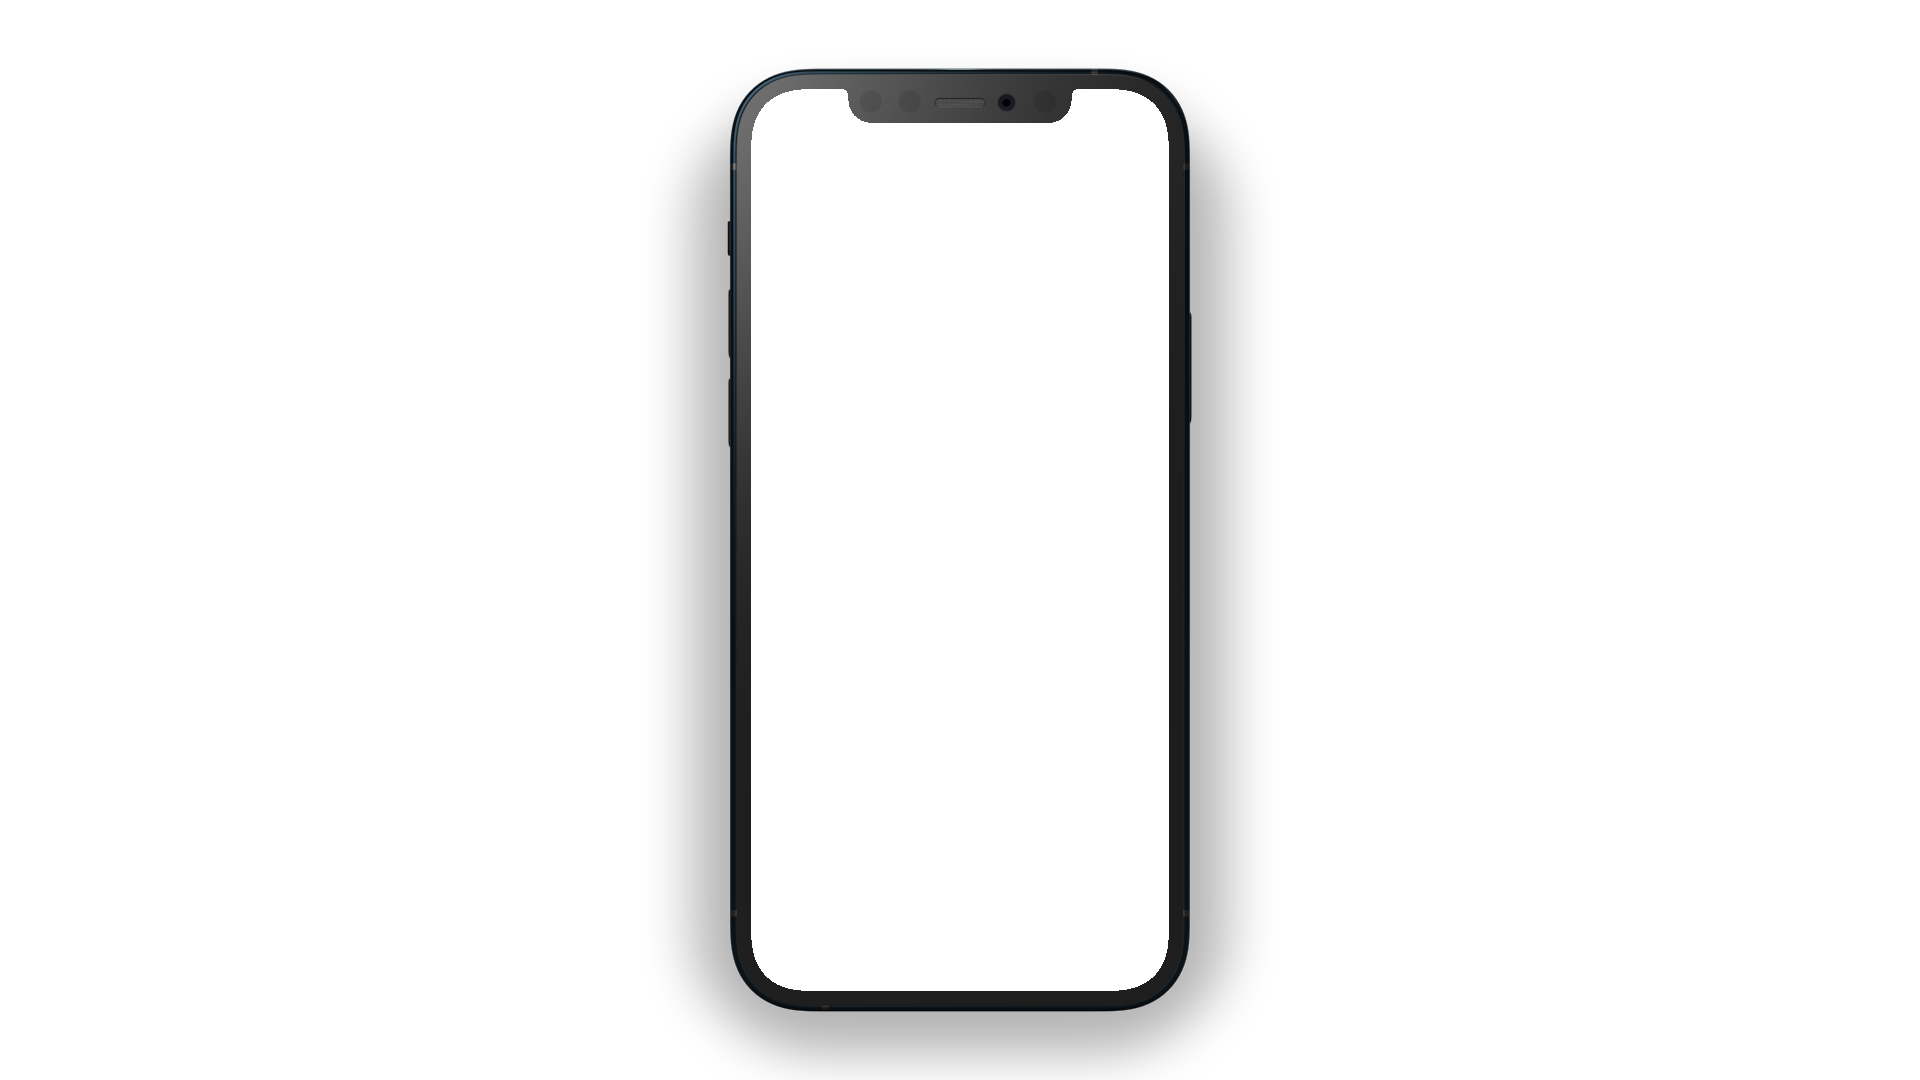 iPhone 12 PNG front view